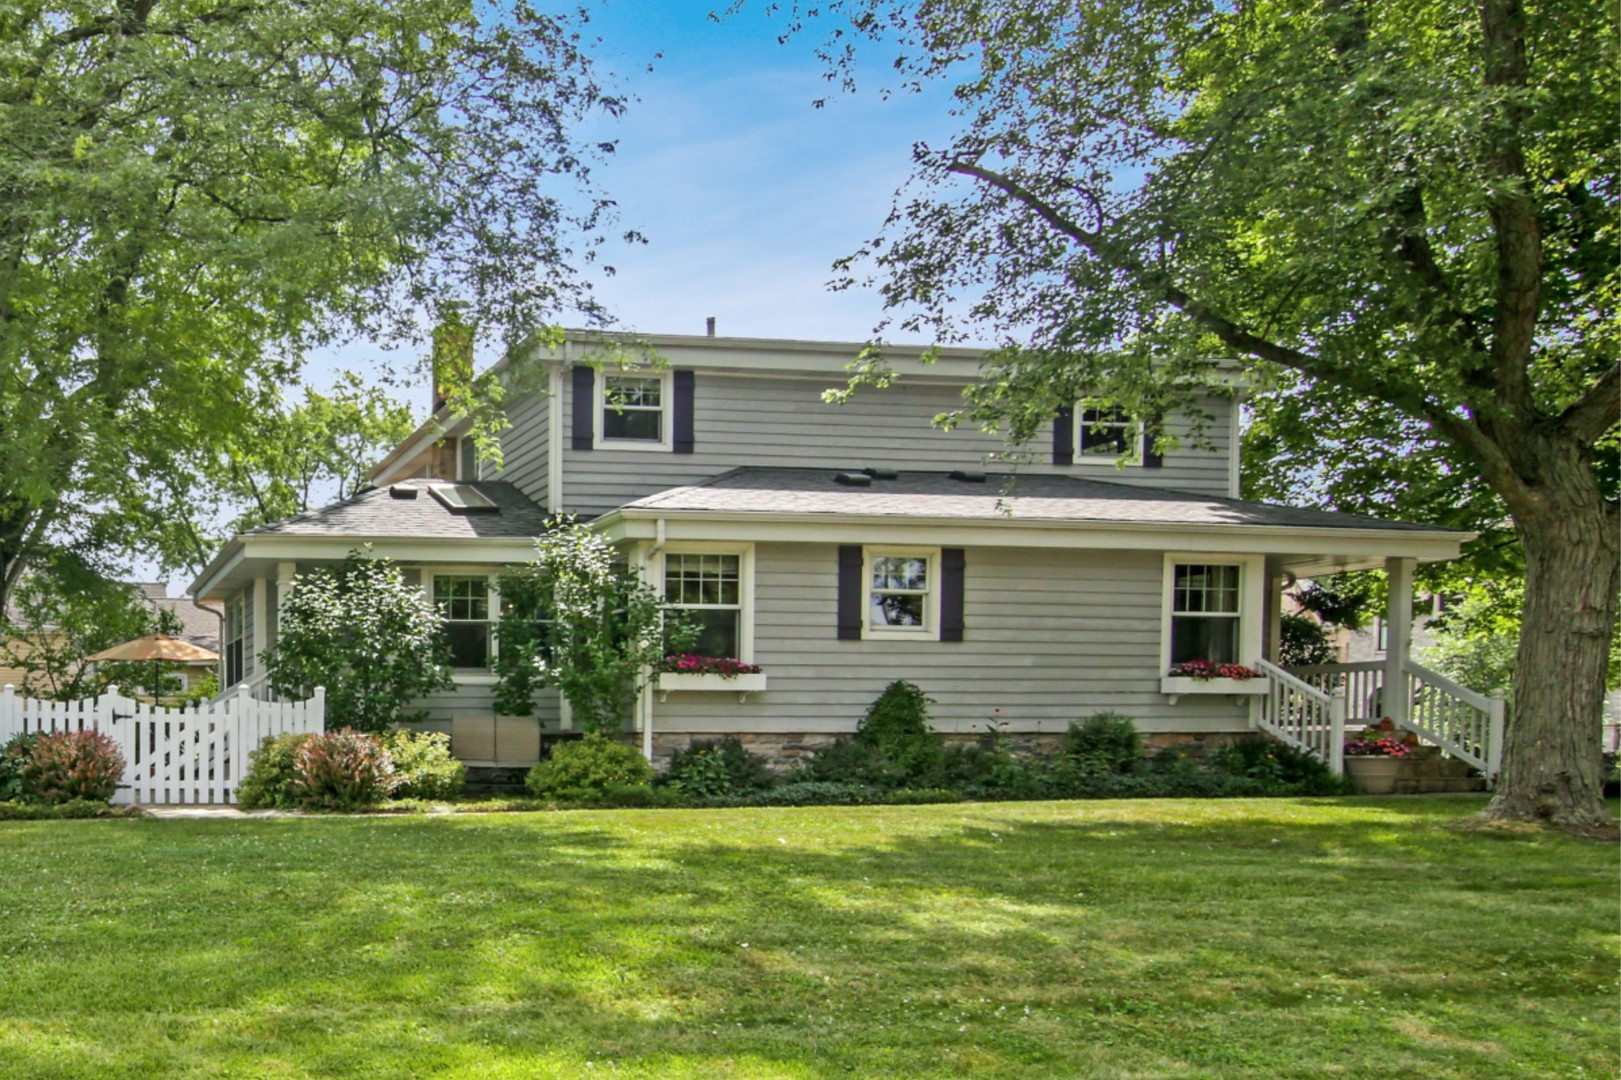 2176 Brentwood Road, Northbrook in Cook County, IL 60062 Home for Sale